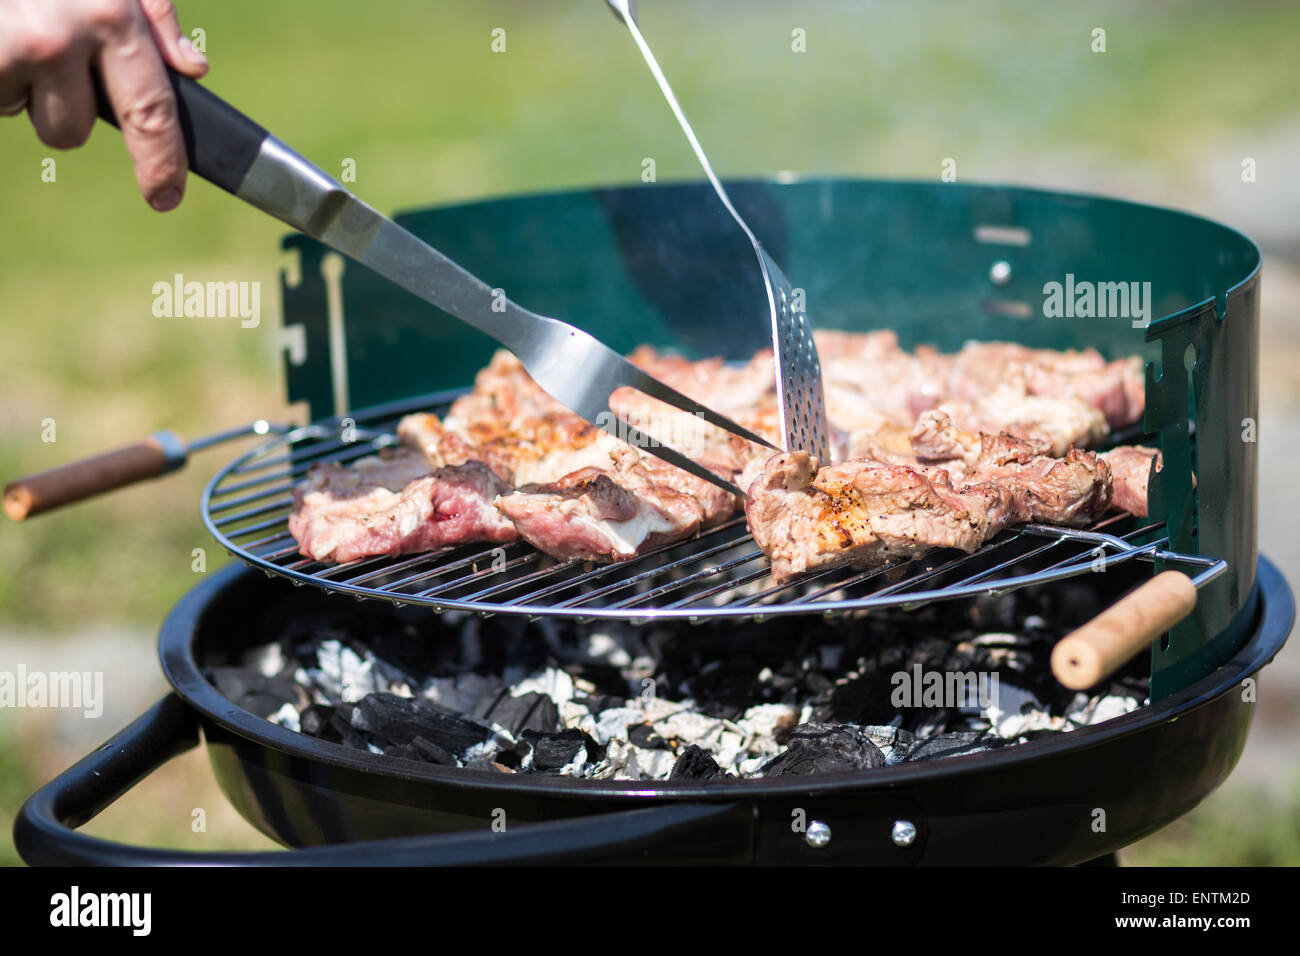 grilling pork on live coals with grill tools Stock Photo